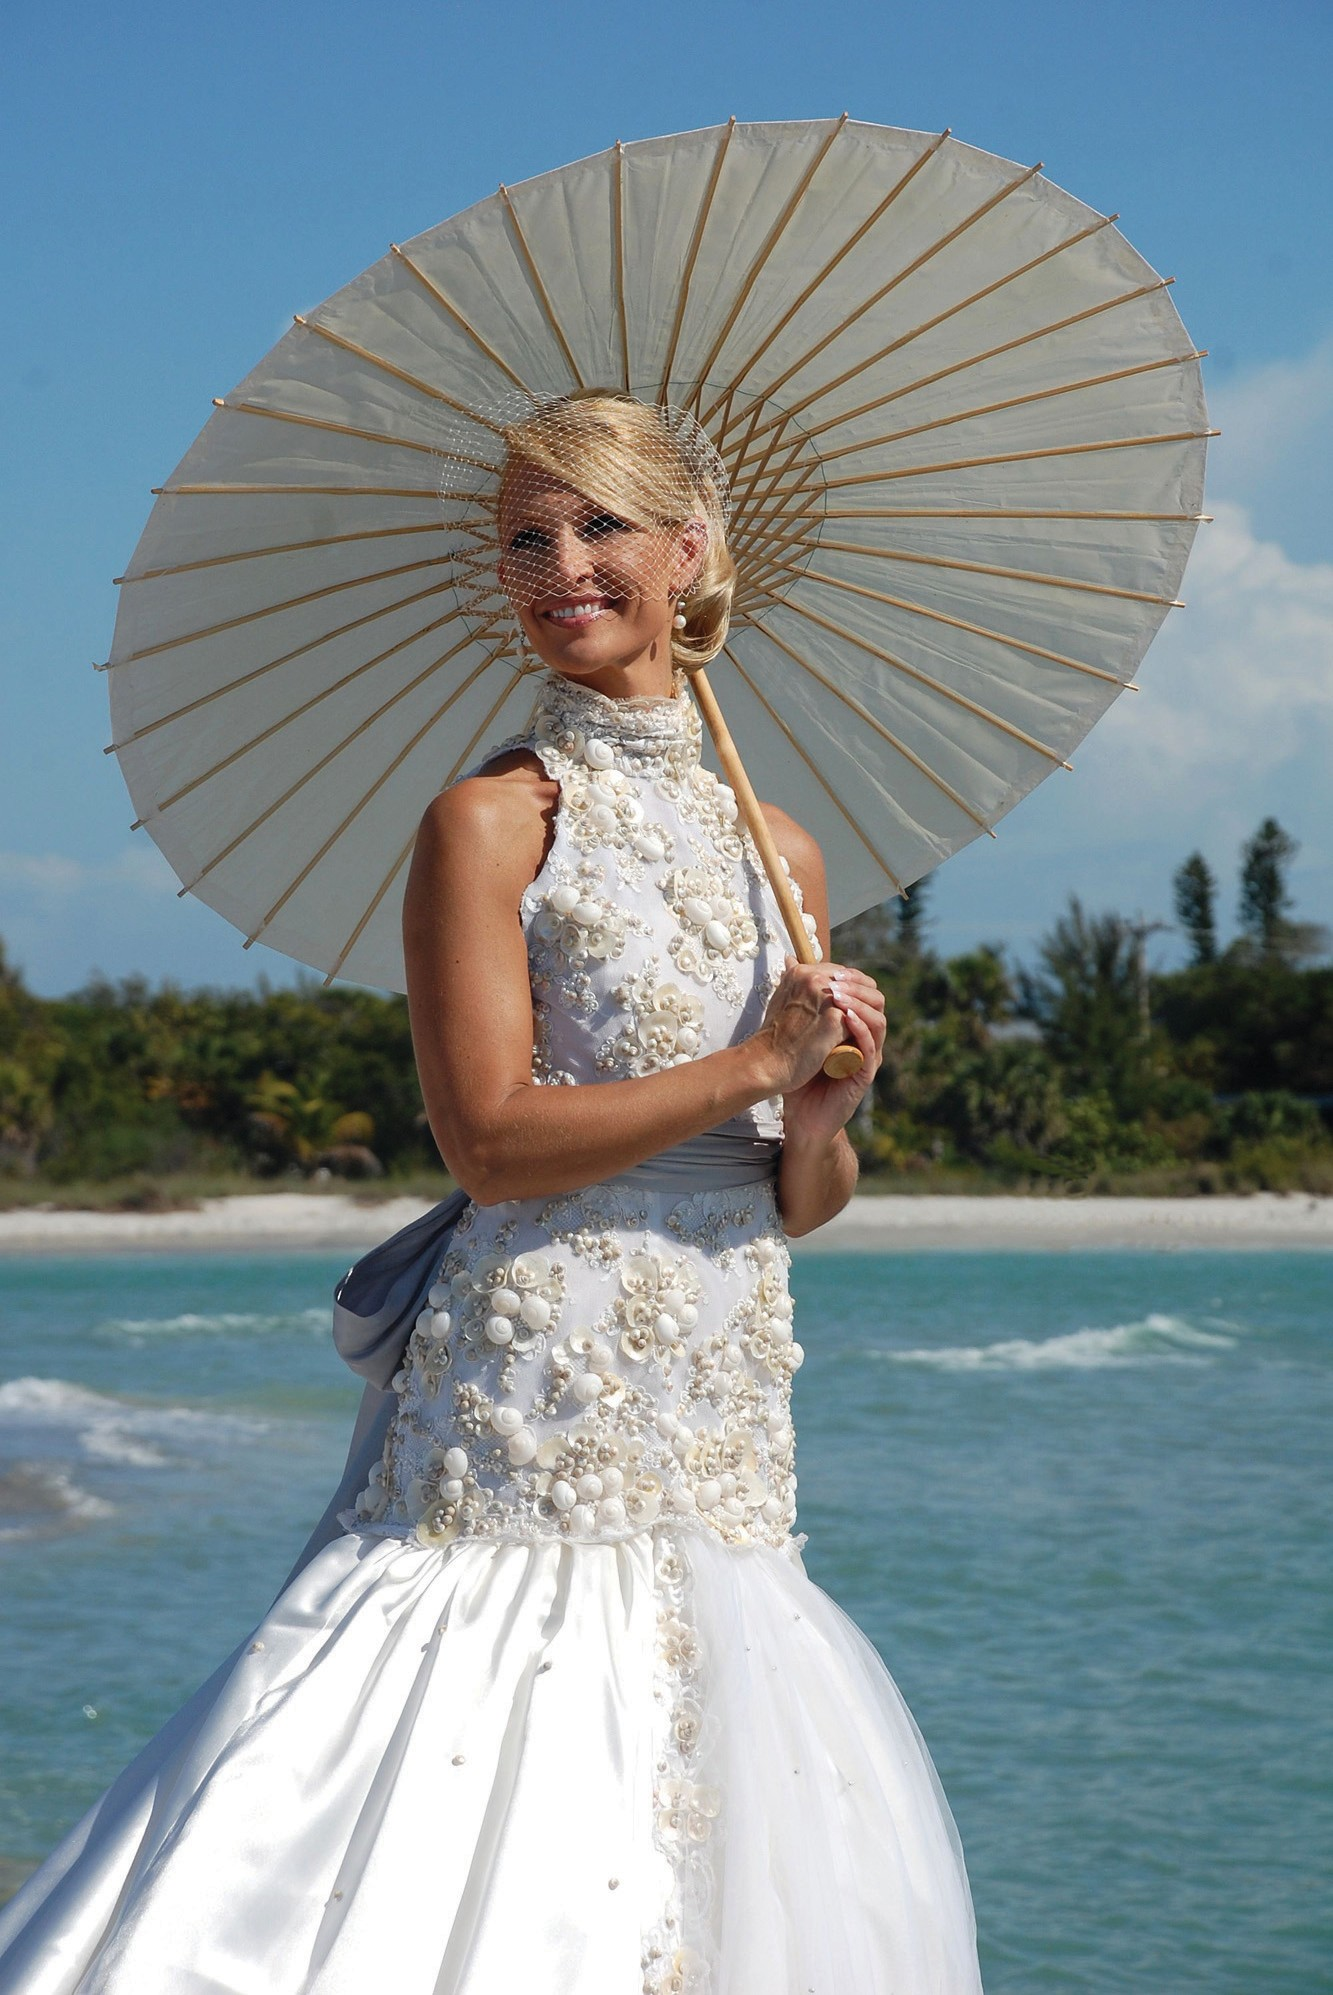 Shell-covered wedding dress on display | Fort Myers Florida Weekly